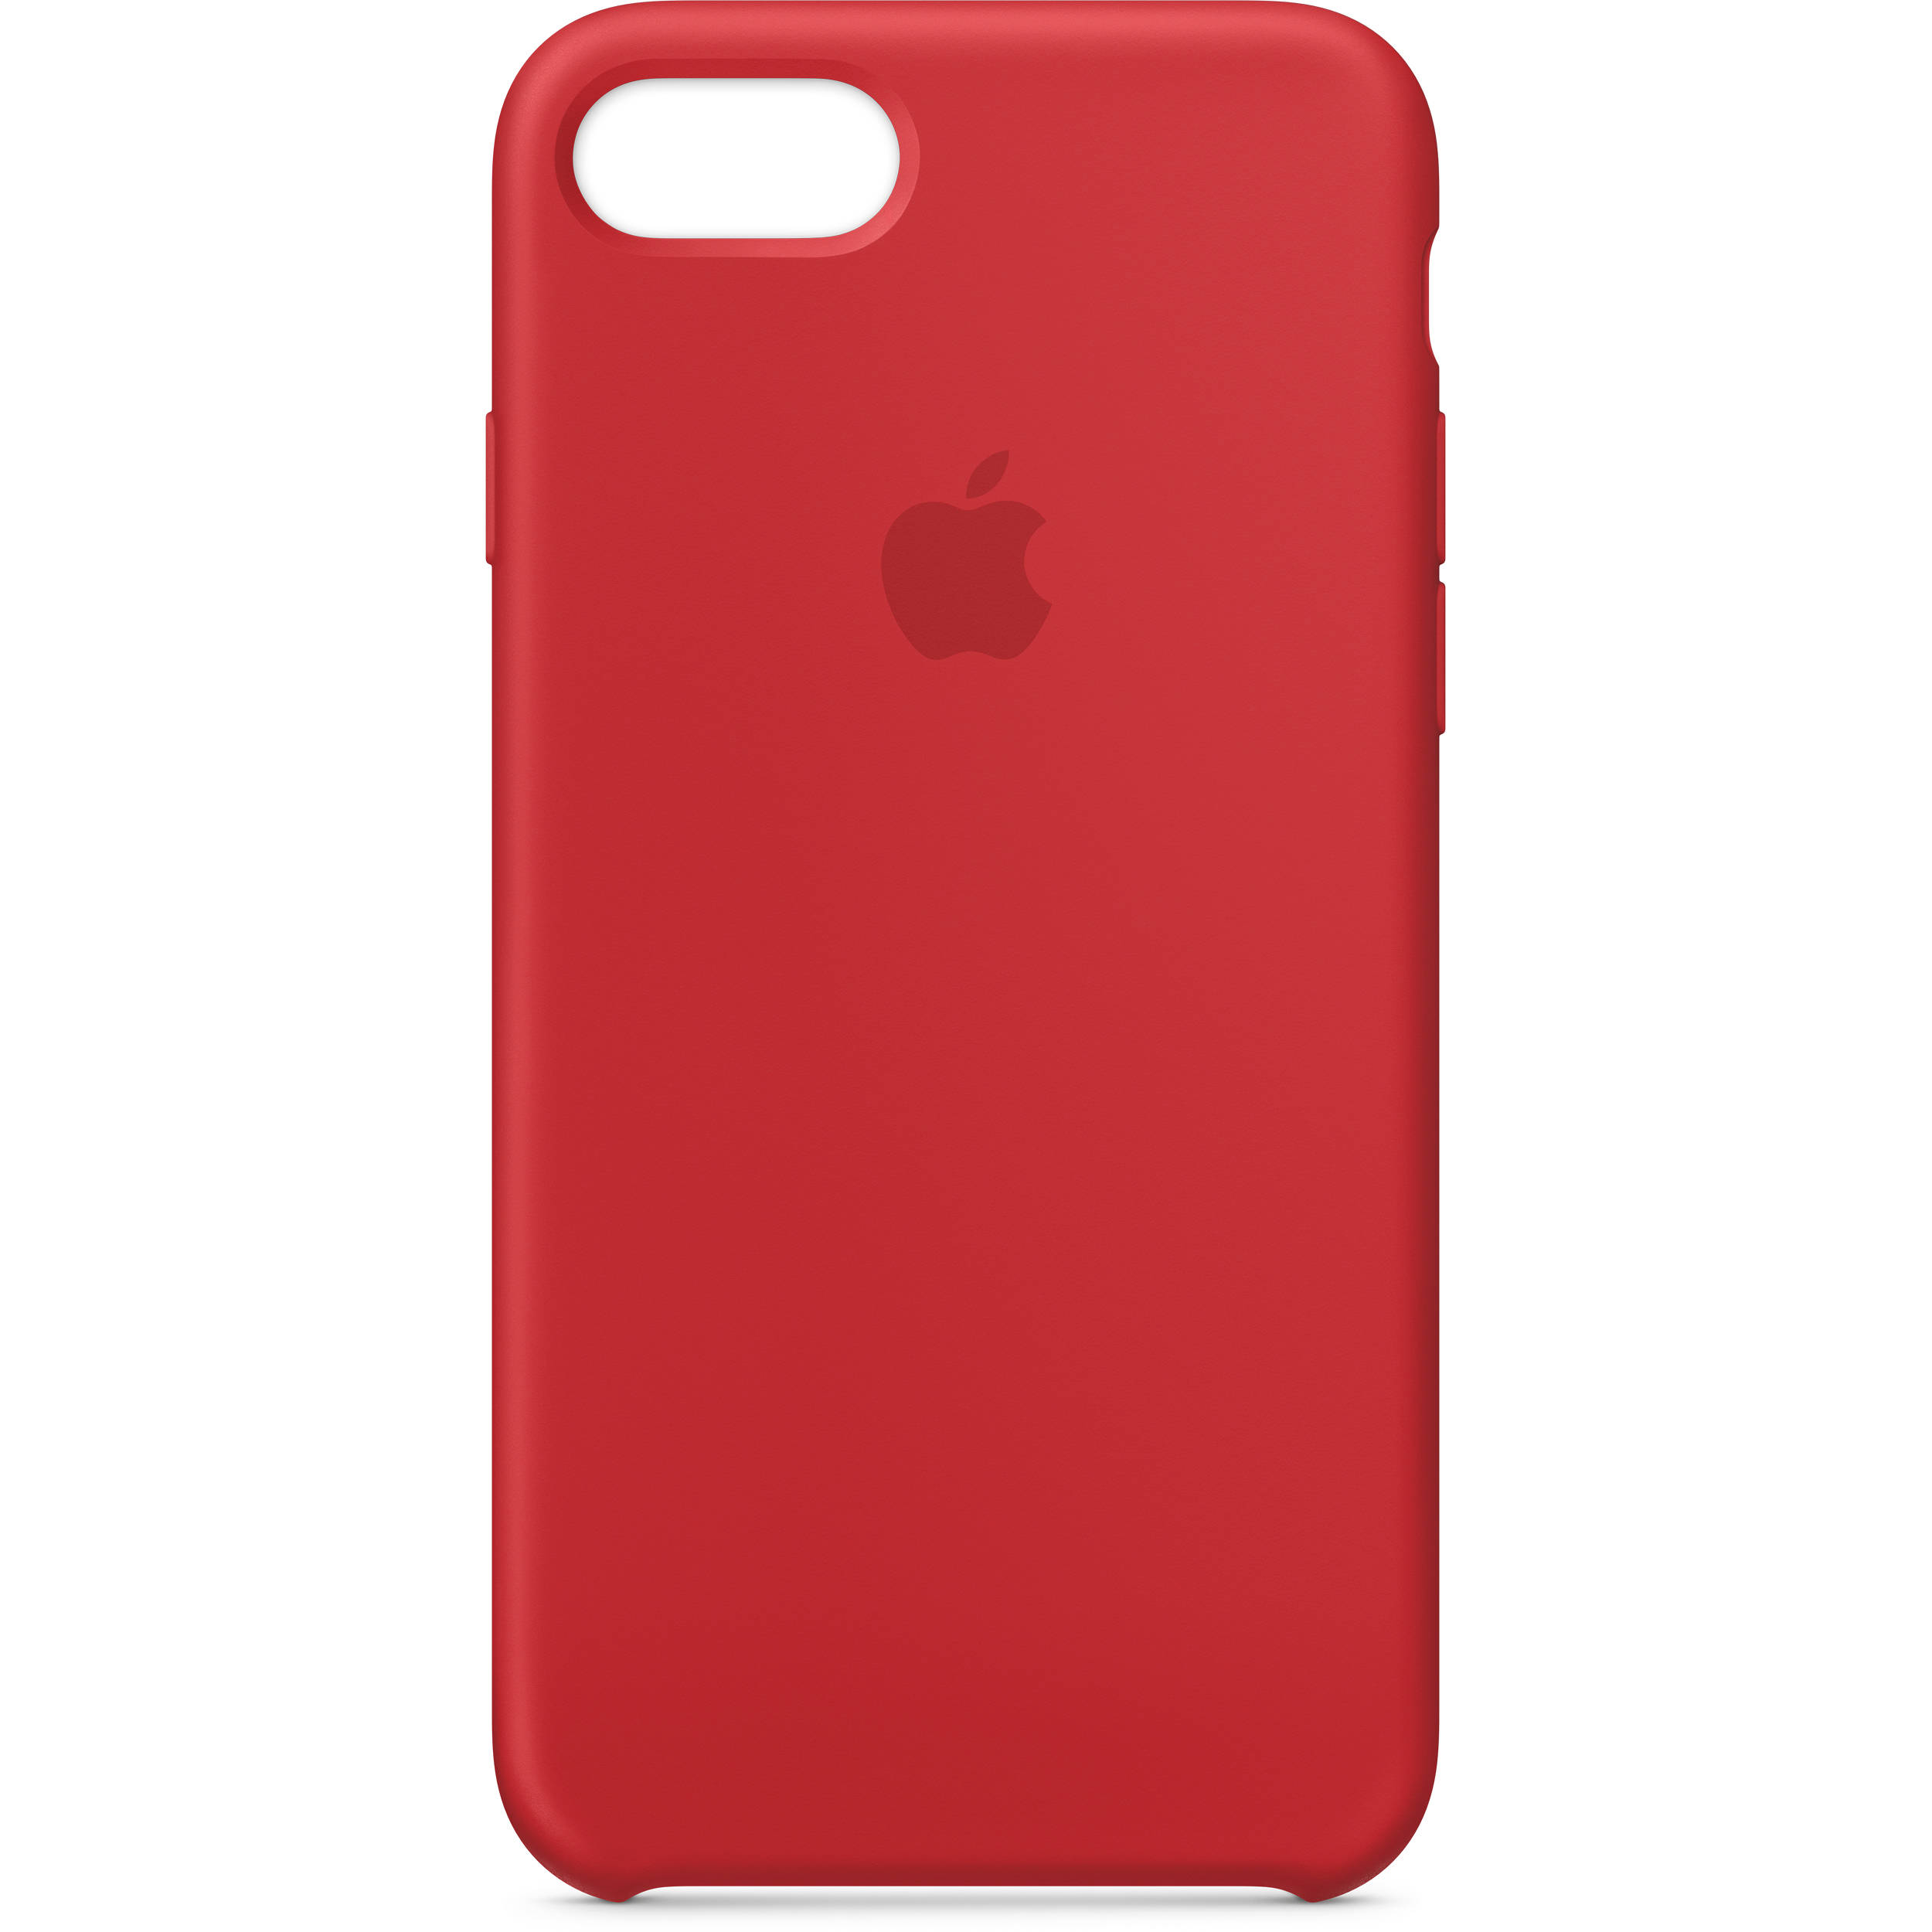 8 case iphone silicone